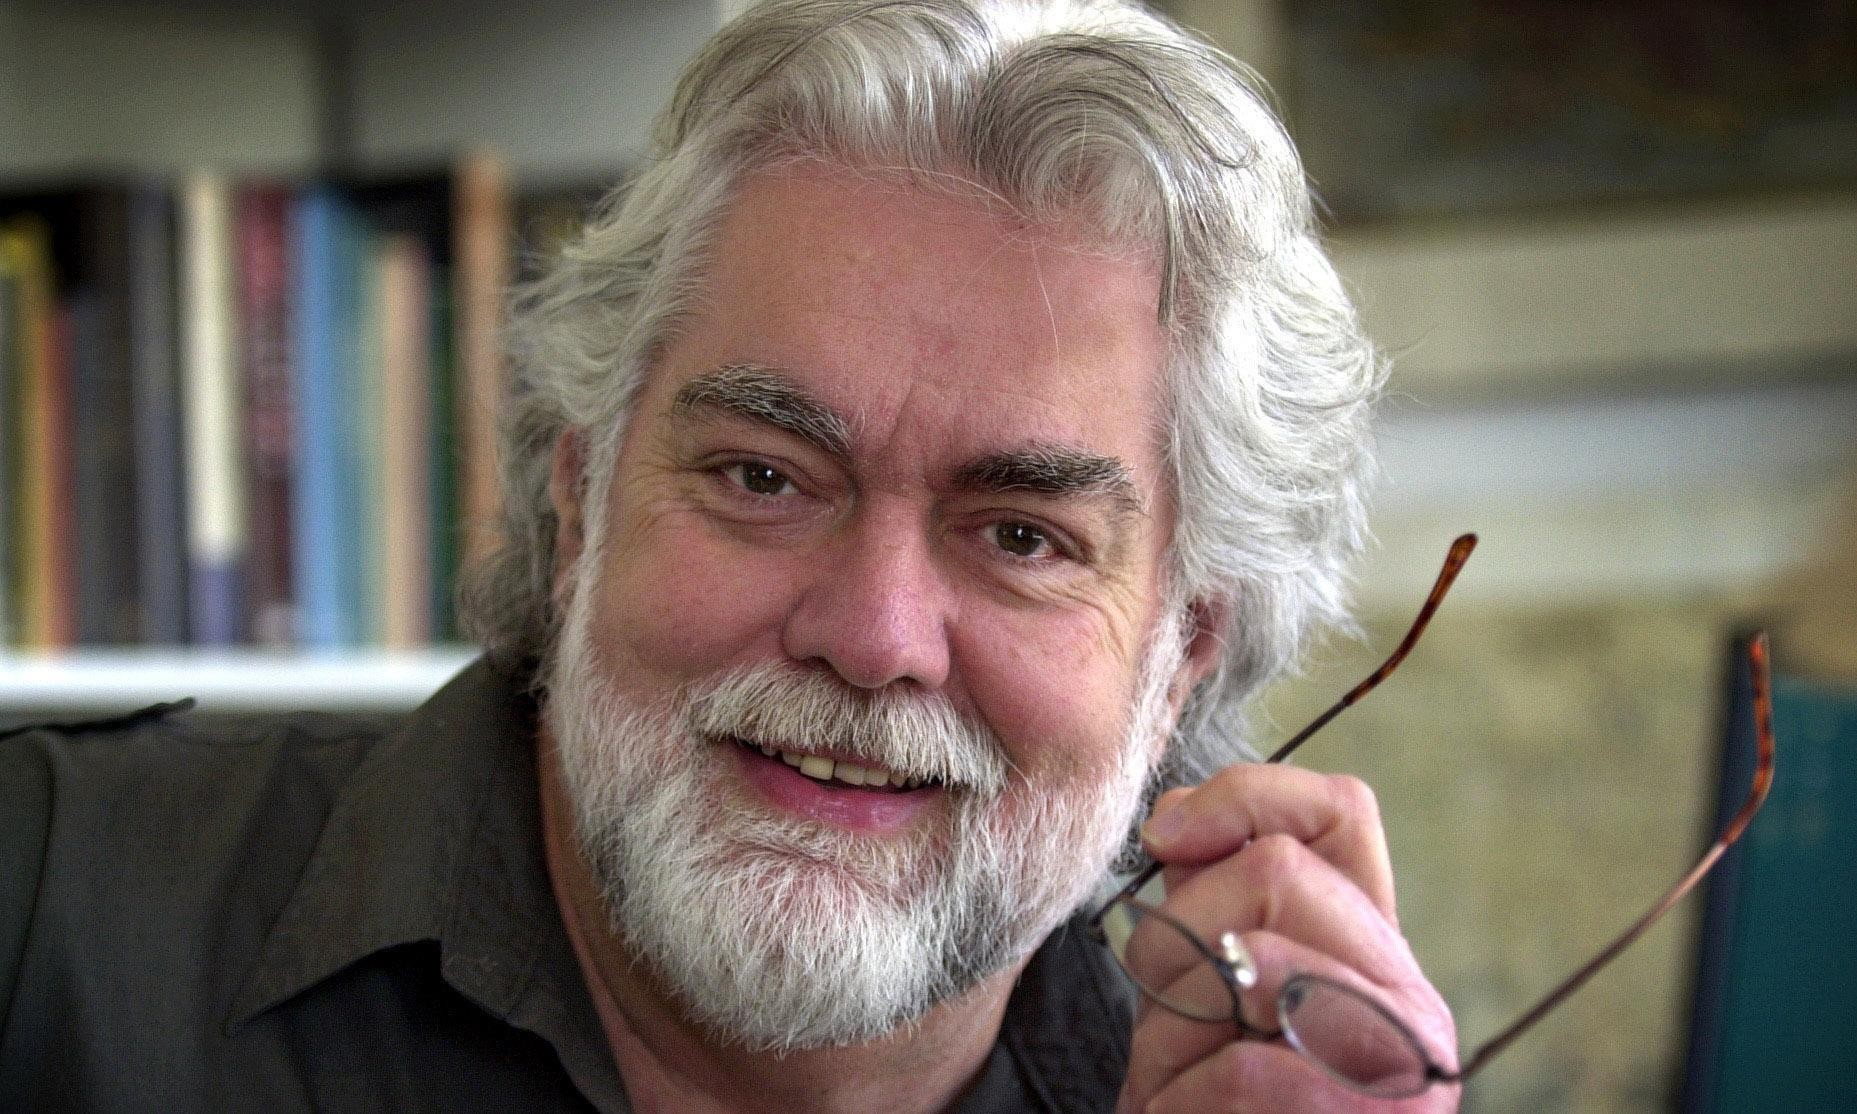 Leatherface actor Gunnar Hansen dies at 68